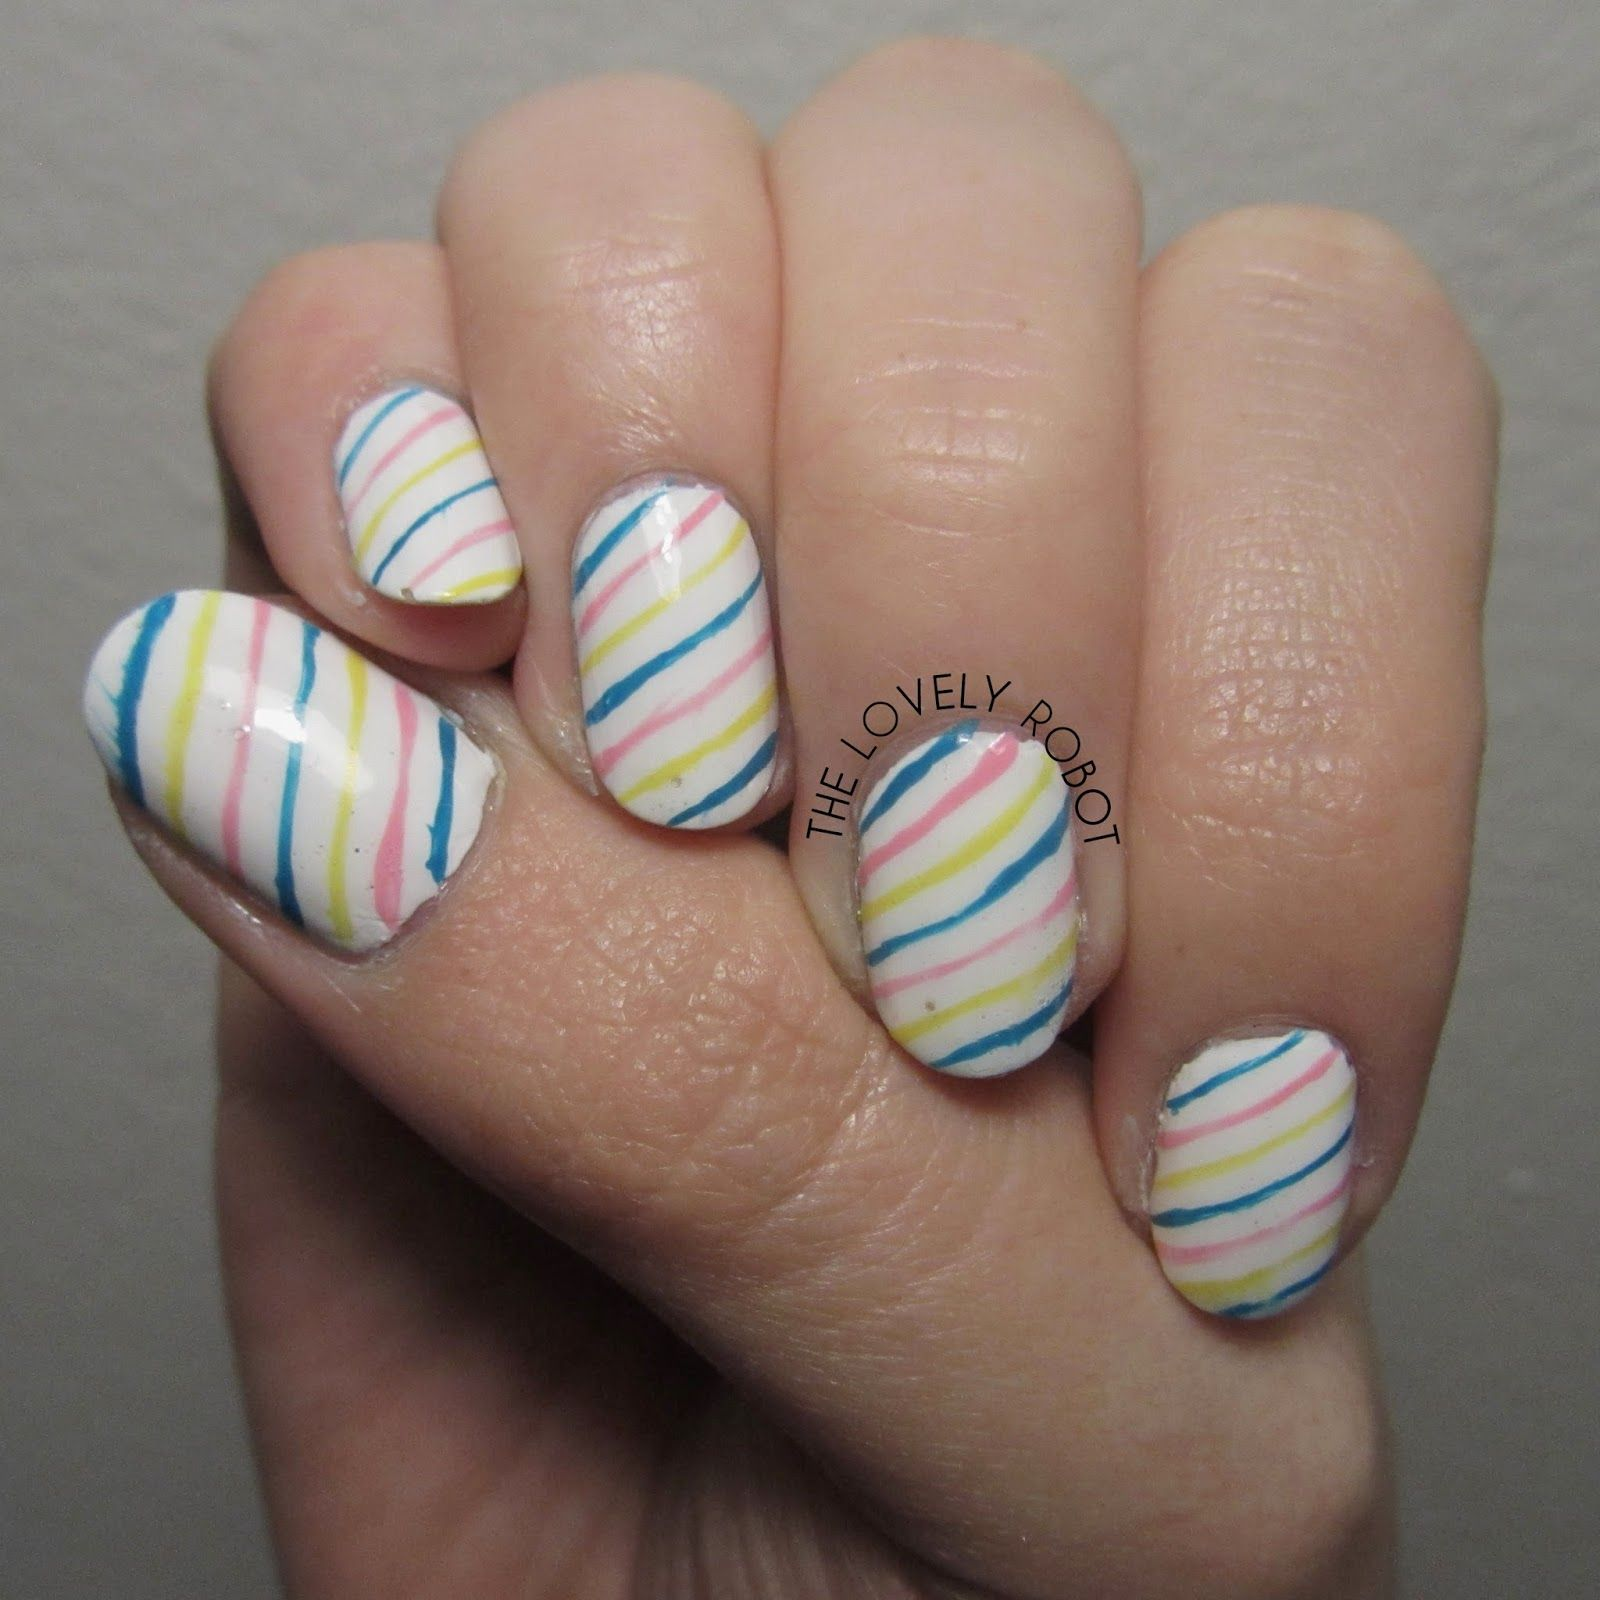 Concrete And Nail Polish Striped Nail Art: Freehand Blue, Pink And Yellow Striped Nails For Tri